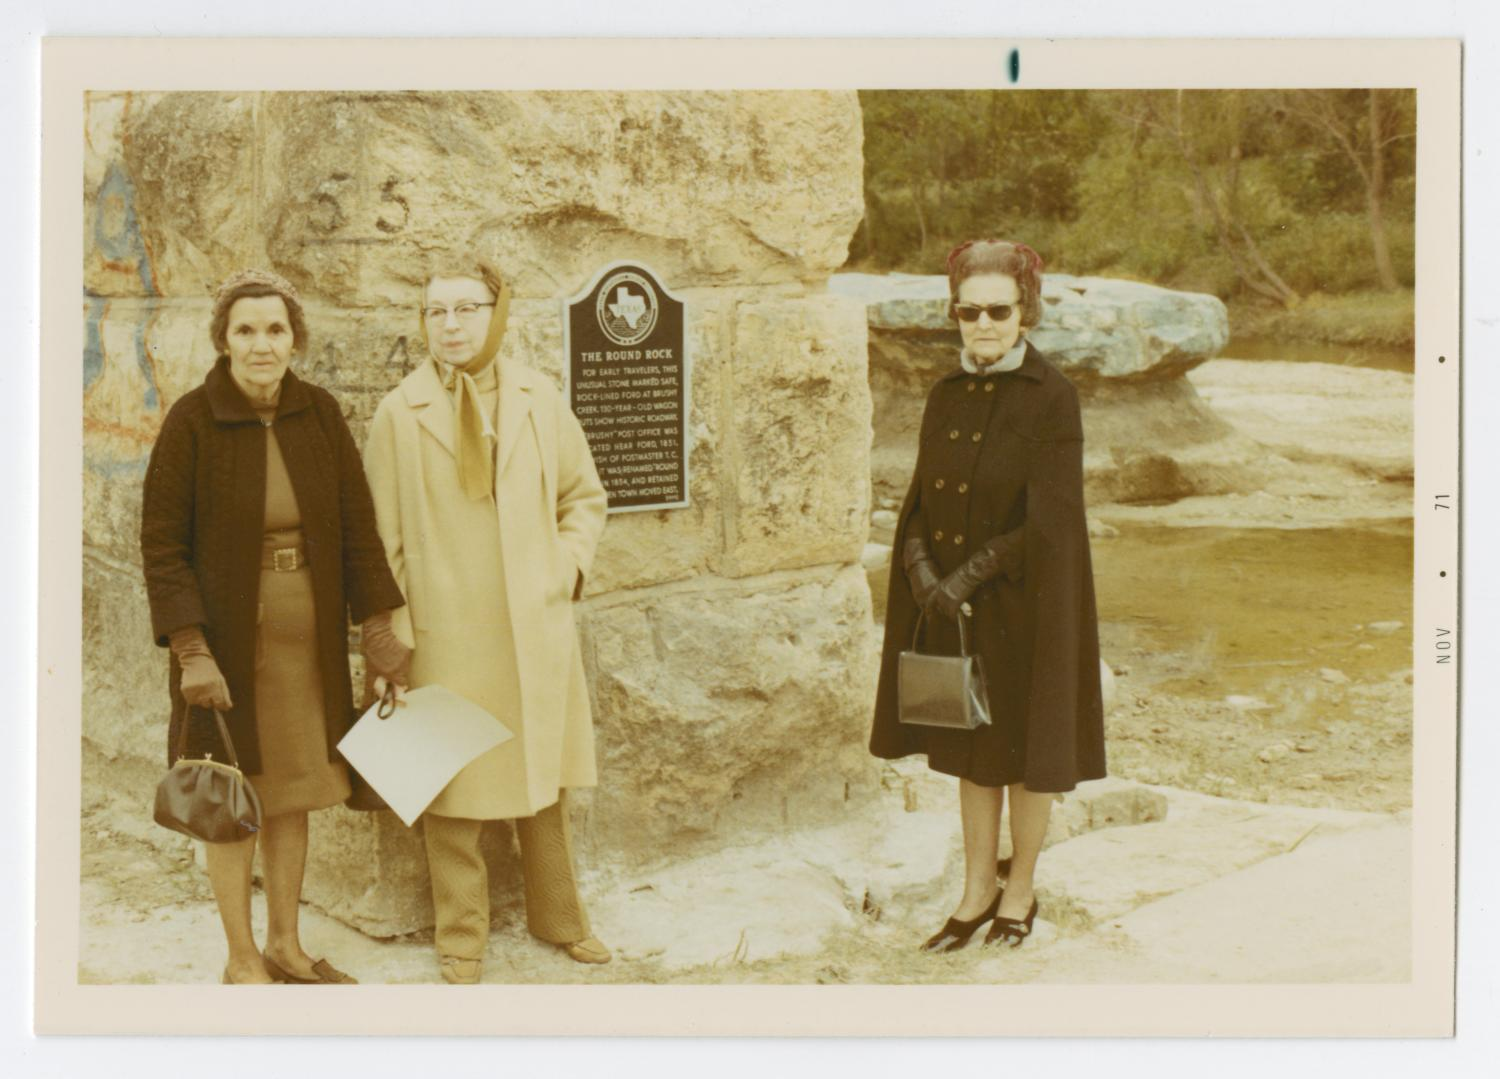 """[Three Women at Round Rock Marker Ceremony], Photograph taken facing east of three women at a historic marker dedication ceremony for Round Rock in Brushy Creek. They can be seen posing with the marker, which is posted on a large stone wall, and are identified on the back of the photo as Mrs. John W. Ledbetter Sr., Mrs. D. B. Gregg, and Mrs. John Cornforth (left to right). In the right background, the """"Round Rock"""" can be seen.,"""